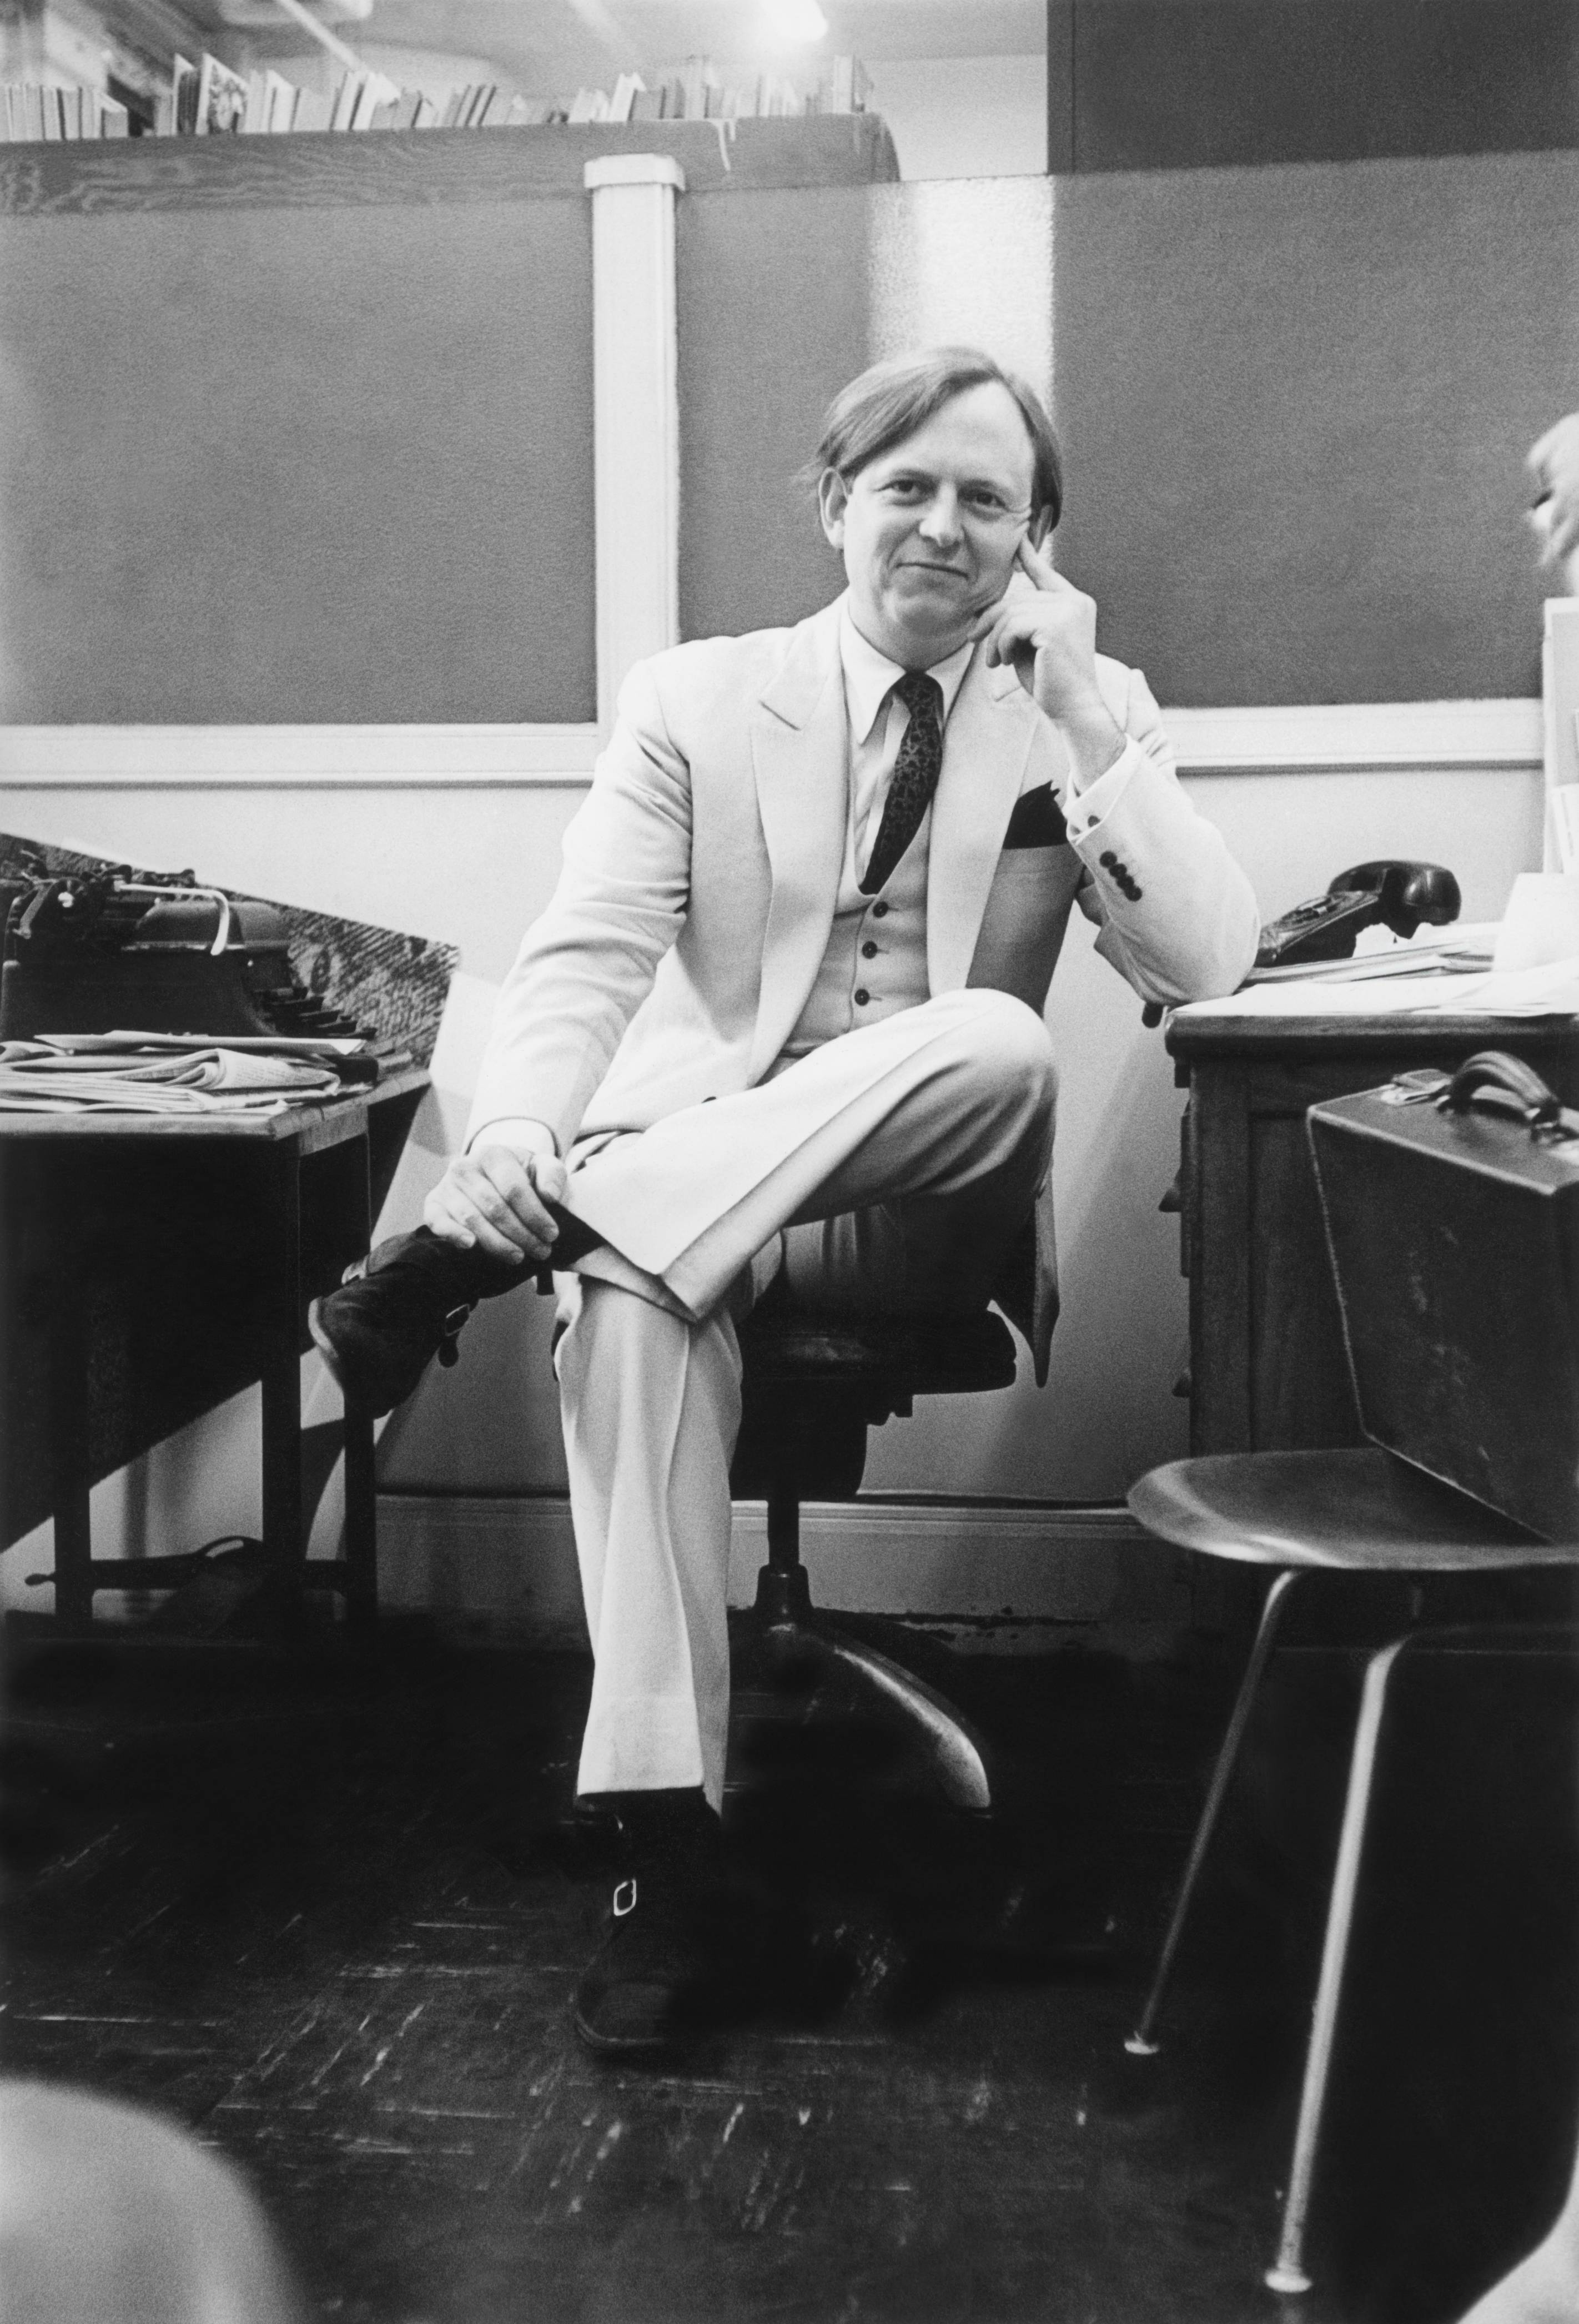 Wolfe — in his signature white suit in 1966 — coined or popularized phrases that became part of the American lexicon, such as